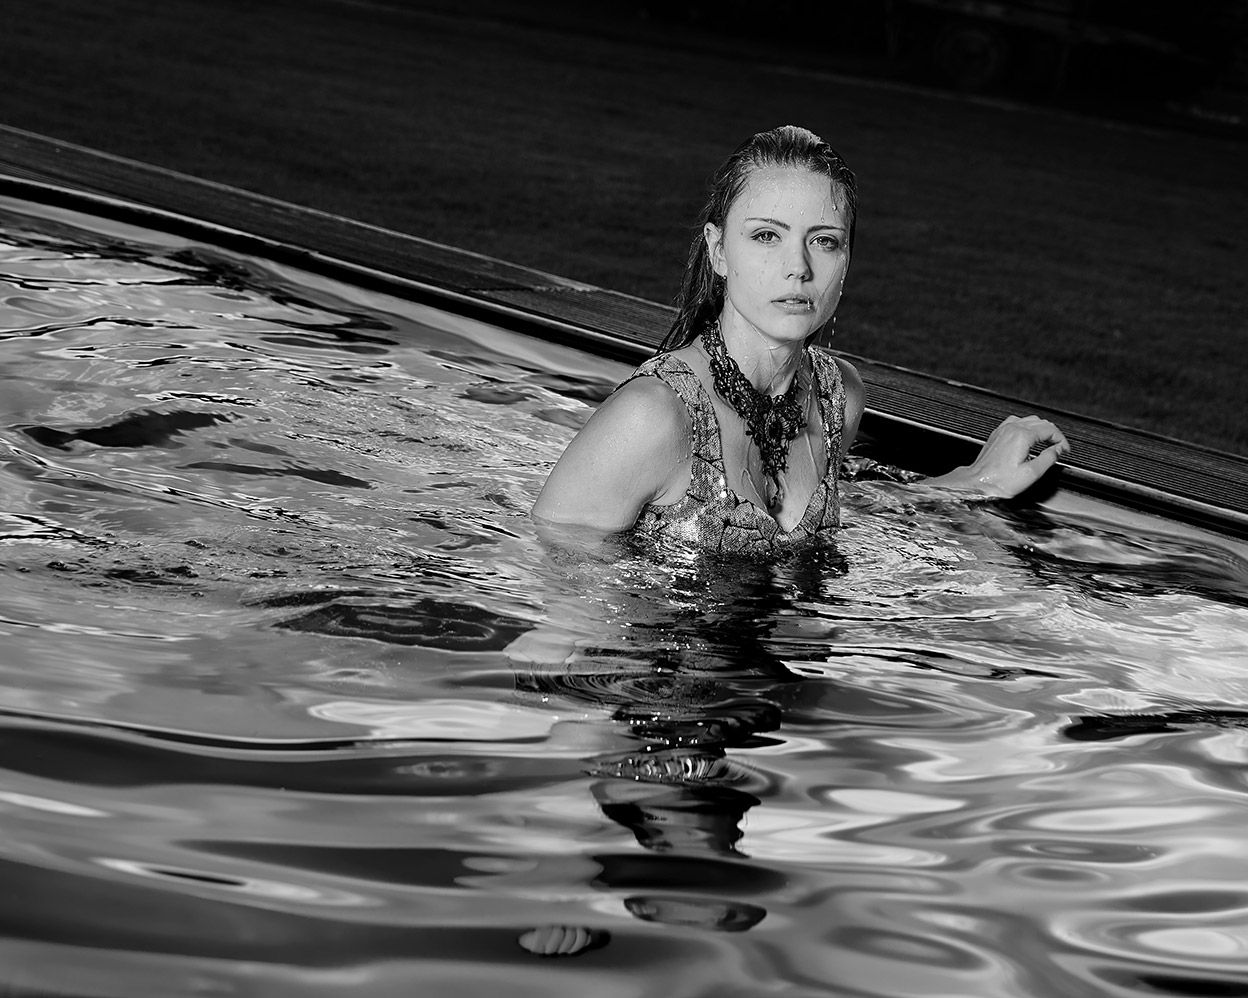 Fashion and Pool - Toni swim with silver Dress in the Pool, by Gunnar Wöbse